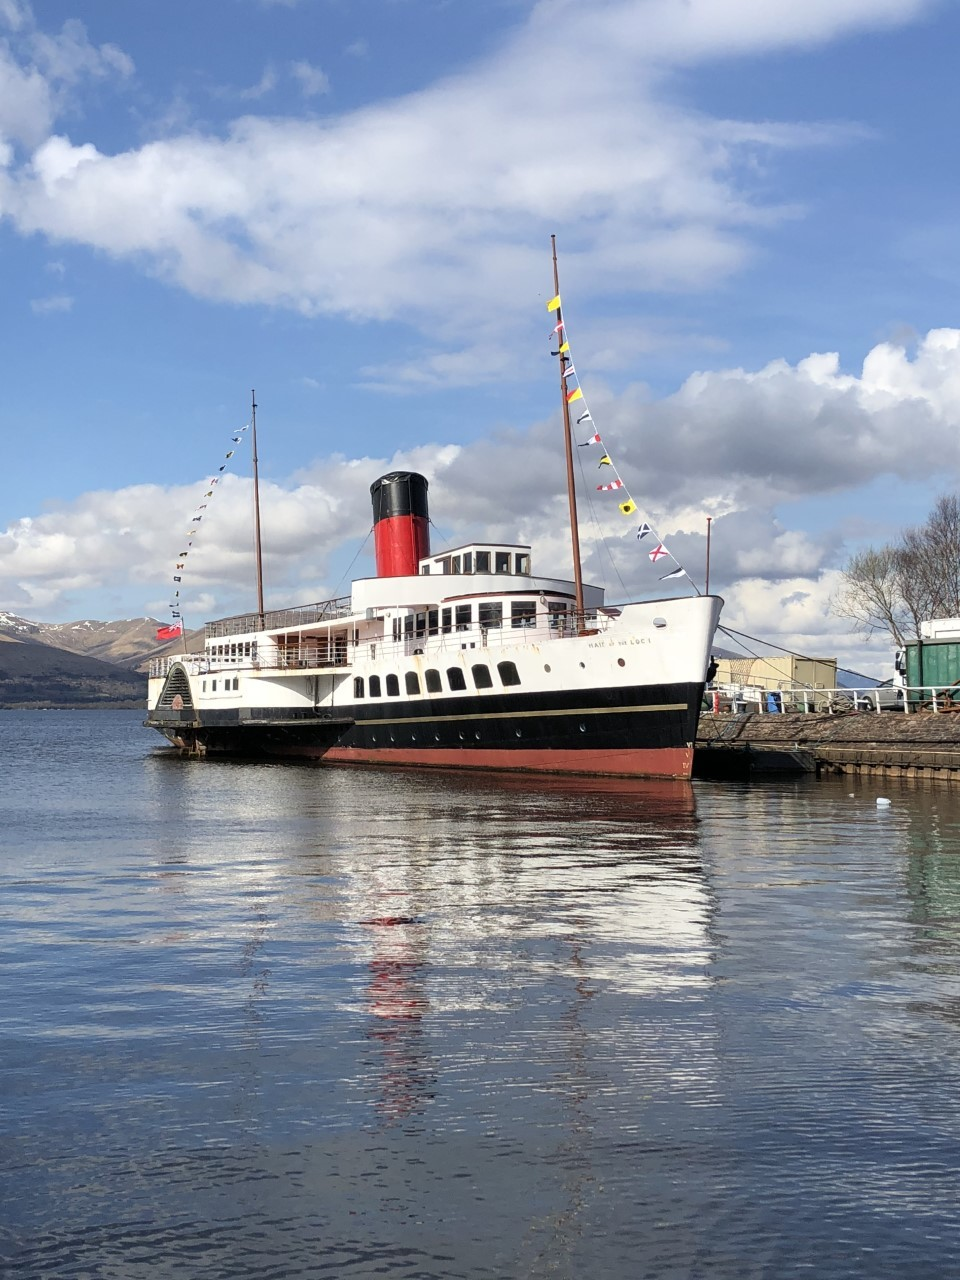 Maid of the Loch will reopen on Friday